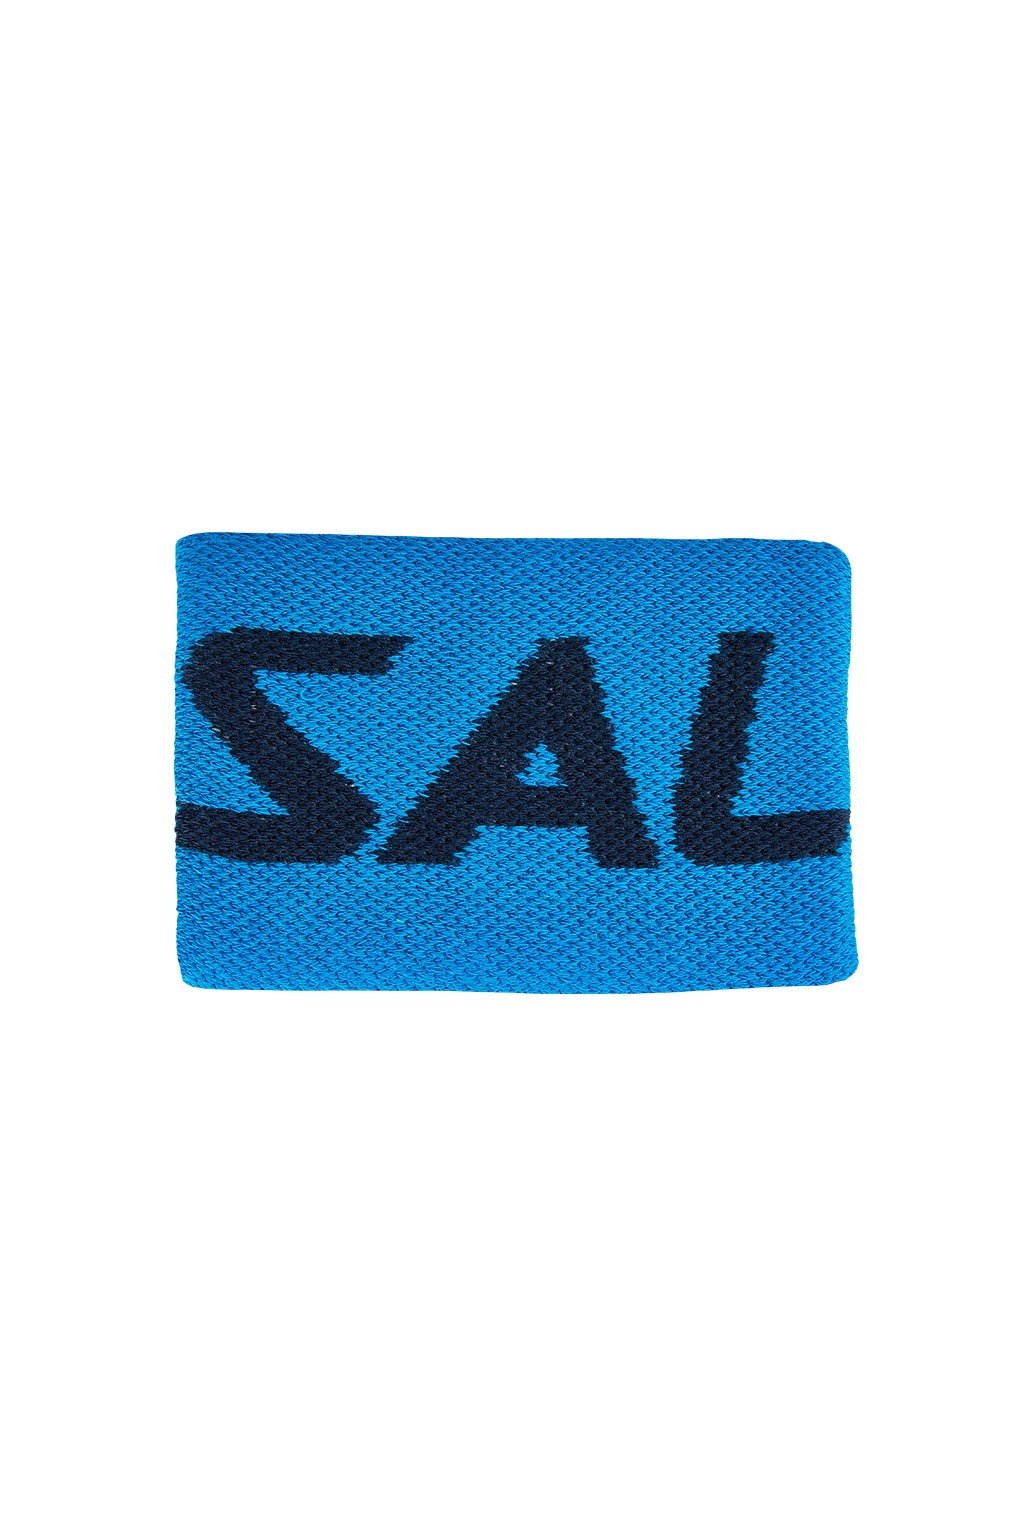 salming wristband mid blue navy